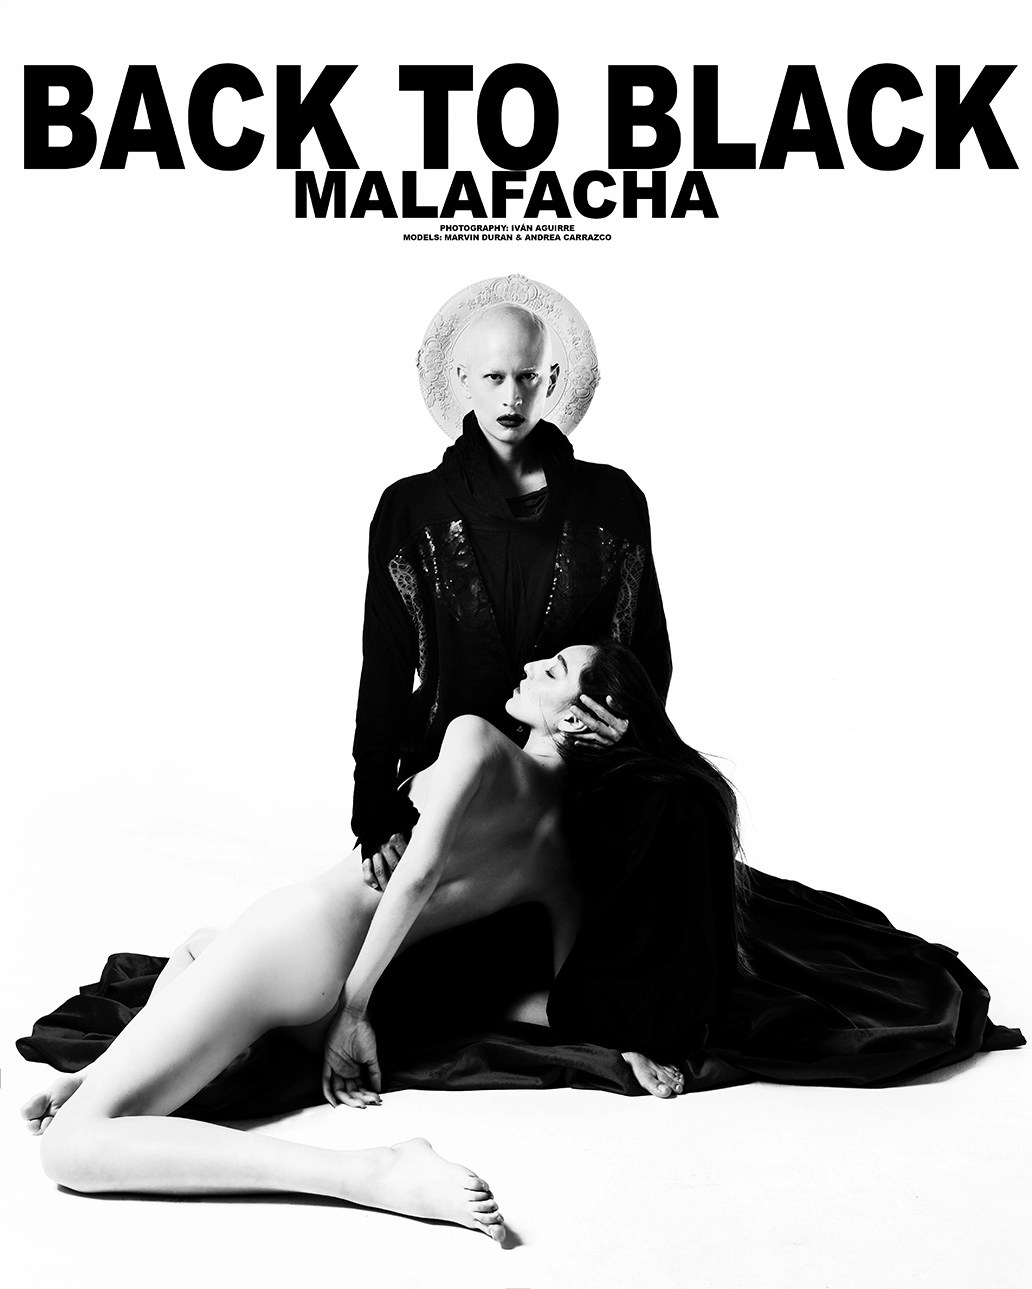 Back to Black PHOTO Ivan Aguirre, Total Look Malafacha